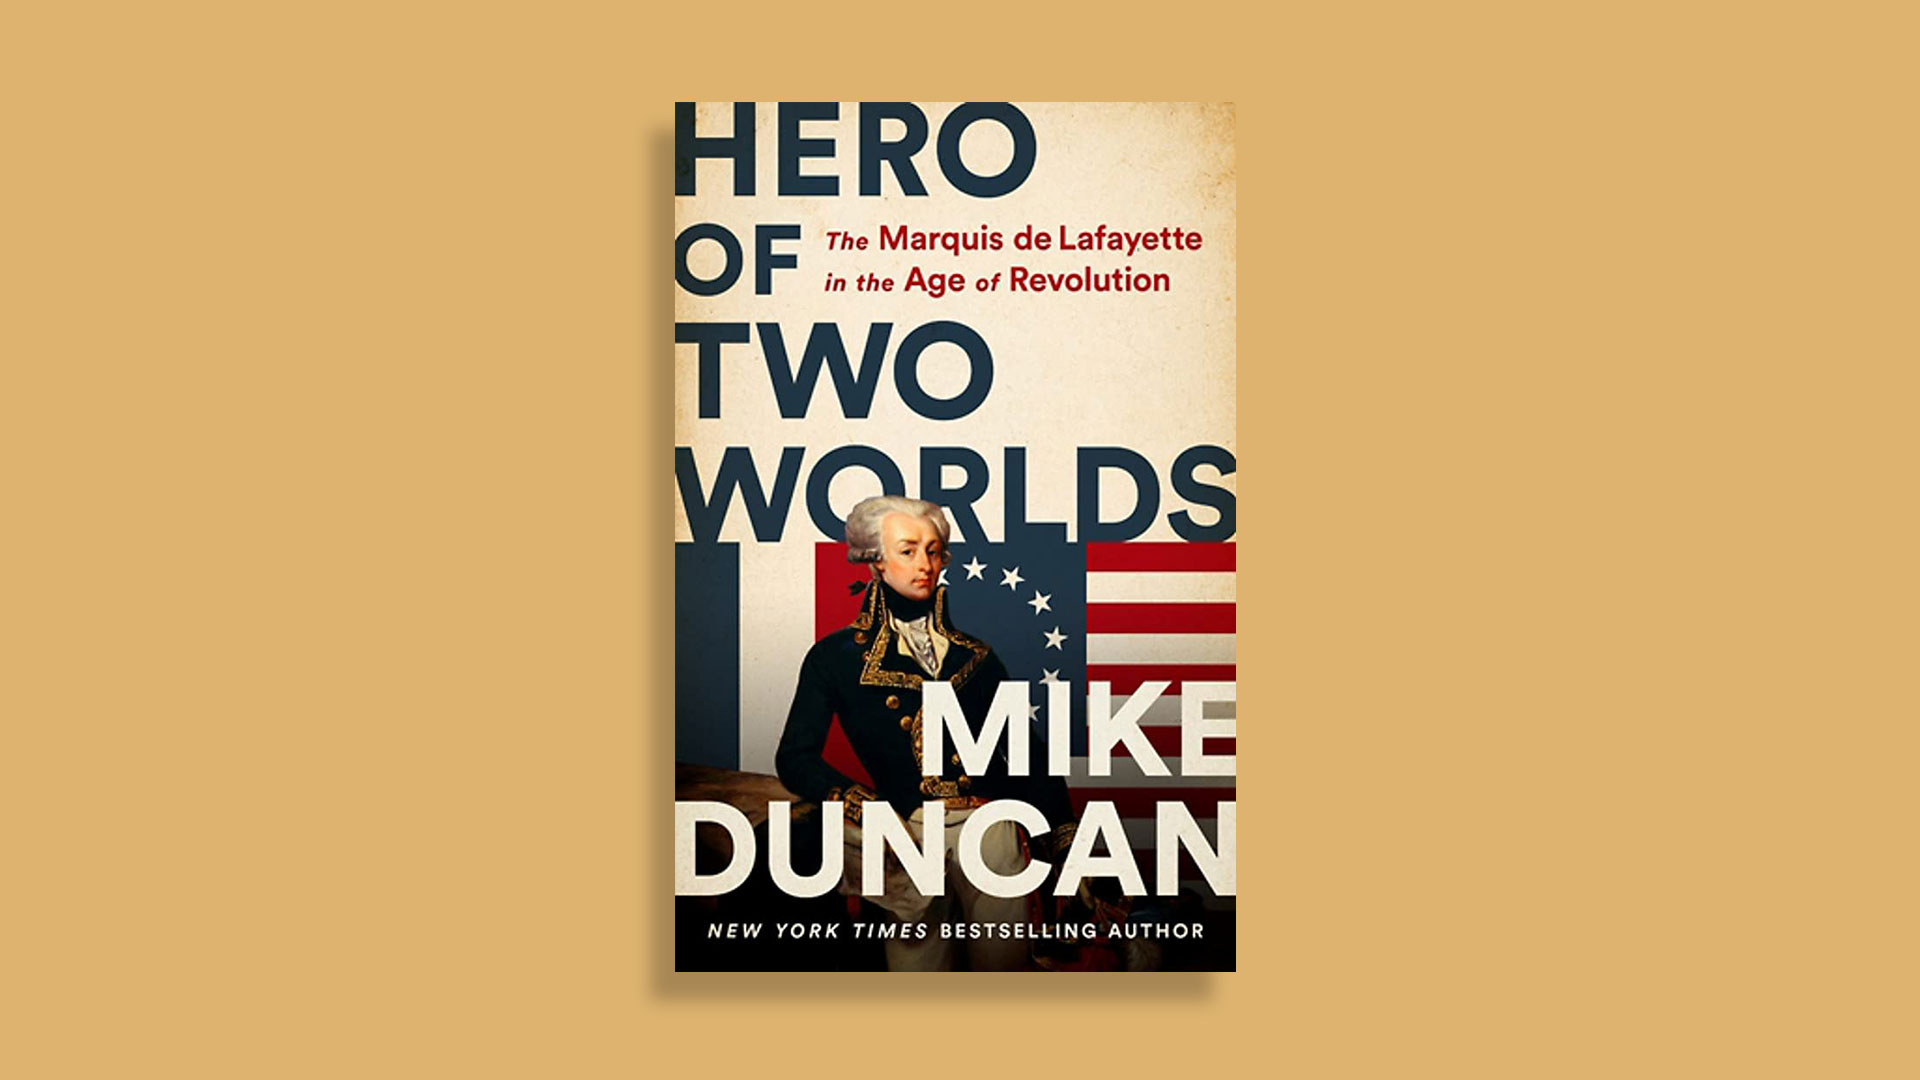 Hero of Two Worlds by Mike Duncan